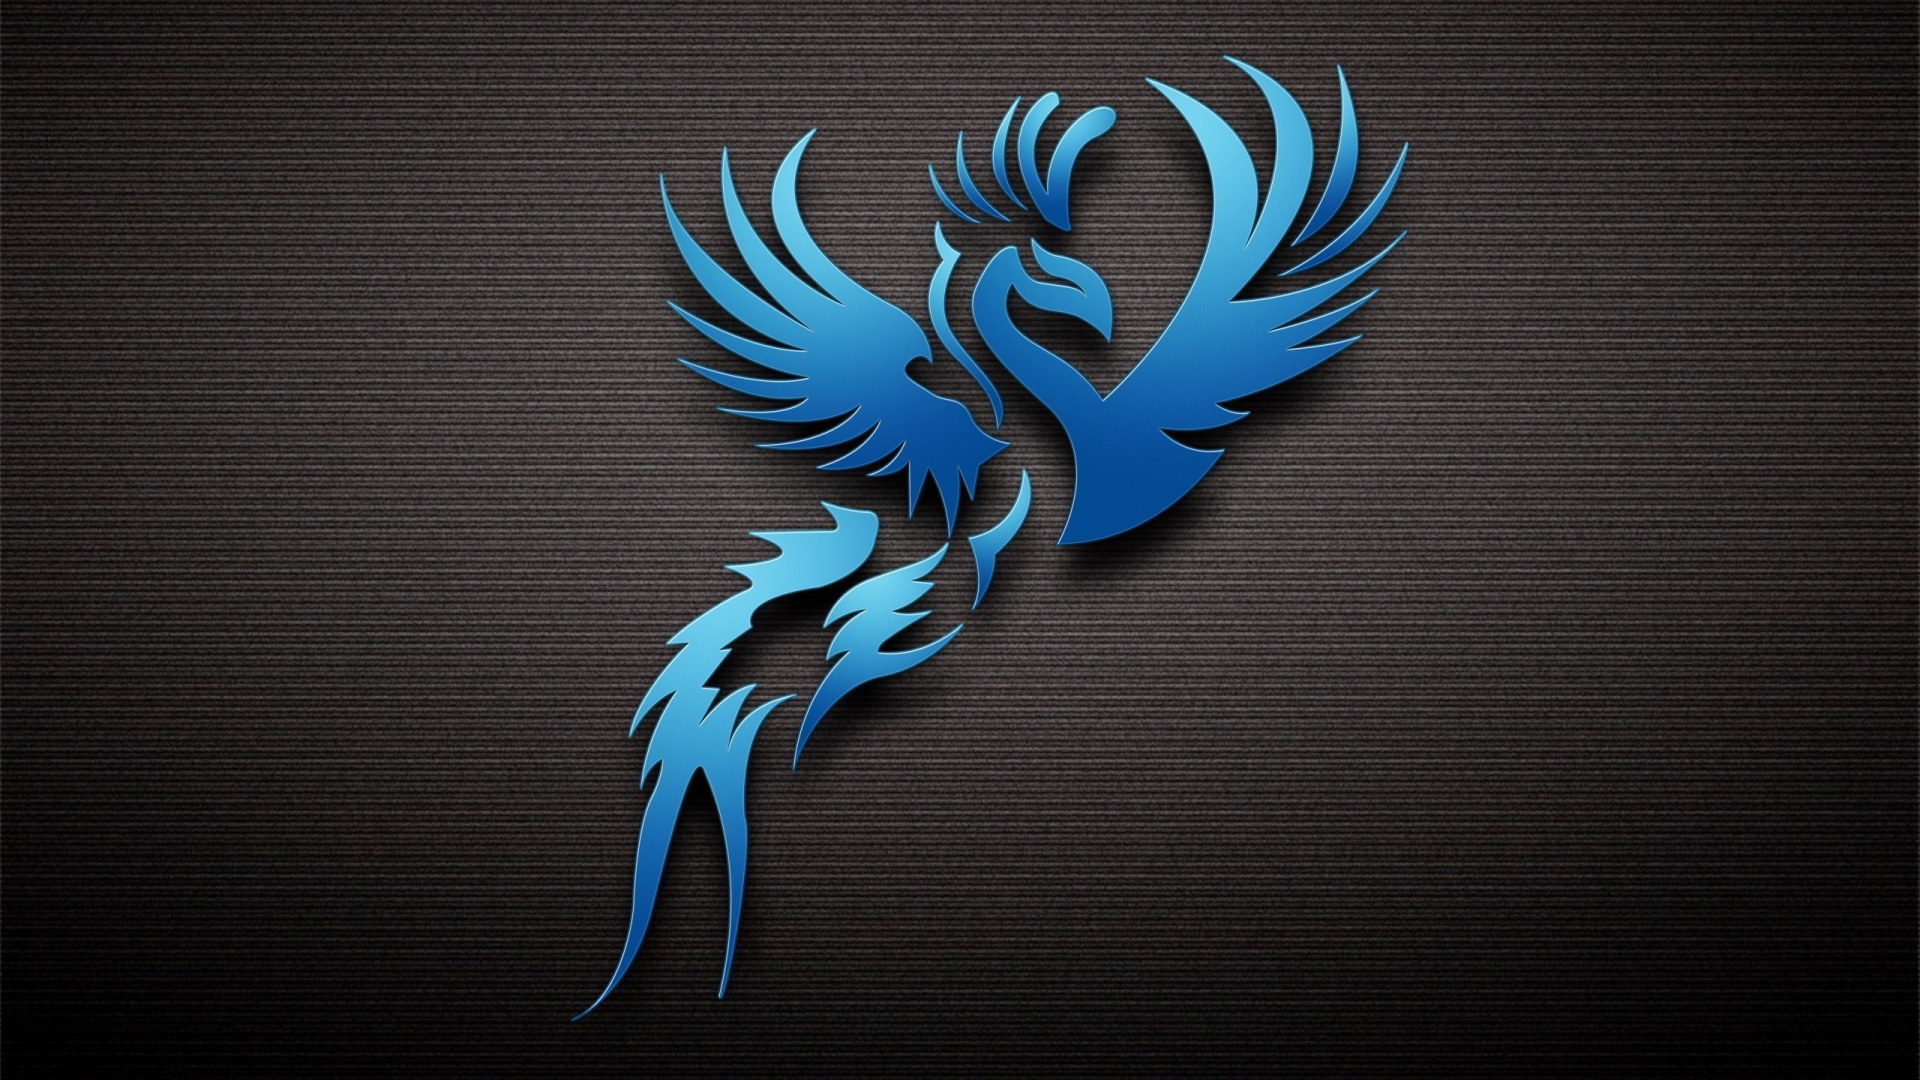 Dark Blue Bird 1920 x 1080 HDTV 1080p Wallpaper